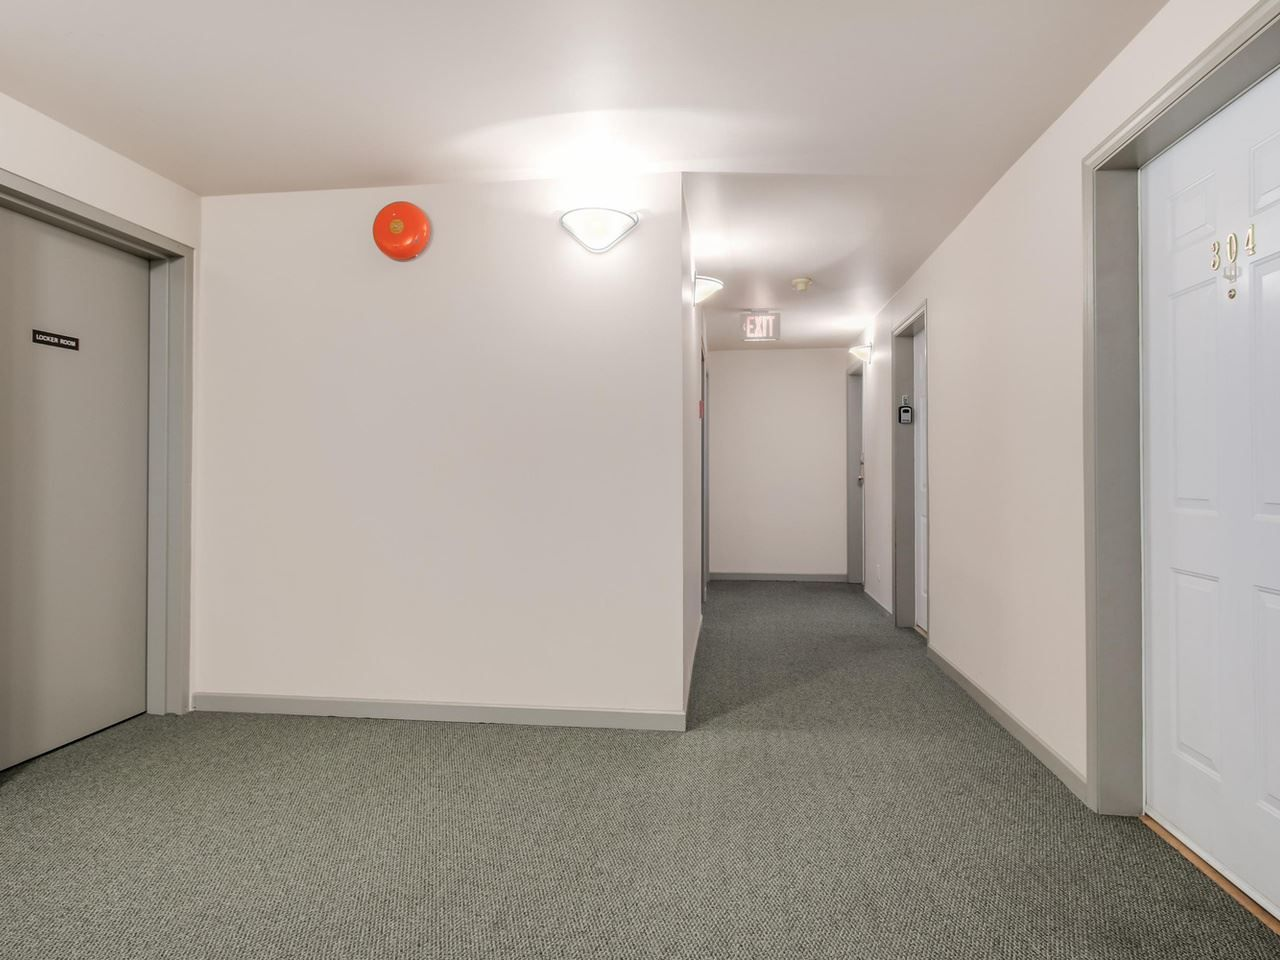 """Photo 13: Photos: 304 137 W 17 Street in North Vancouver: Central Lonsdale Condo for sale in """"Westgate"""" : MLS®# R2075830"""